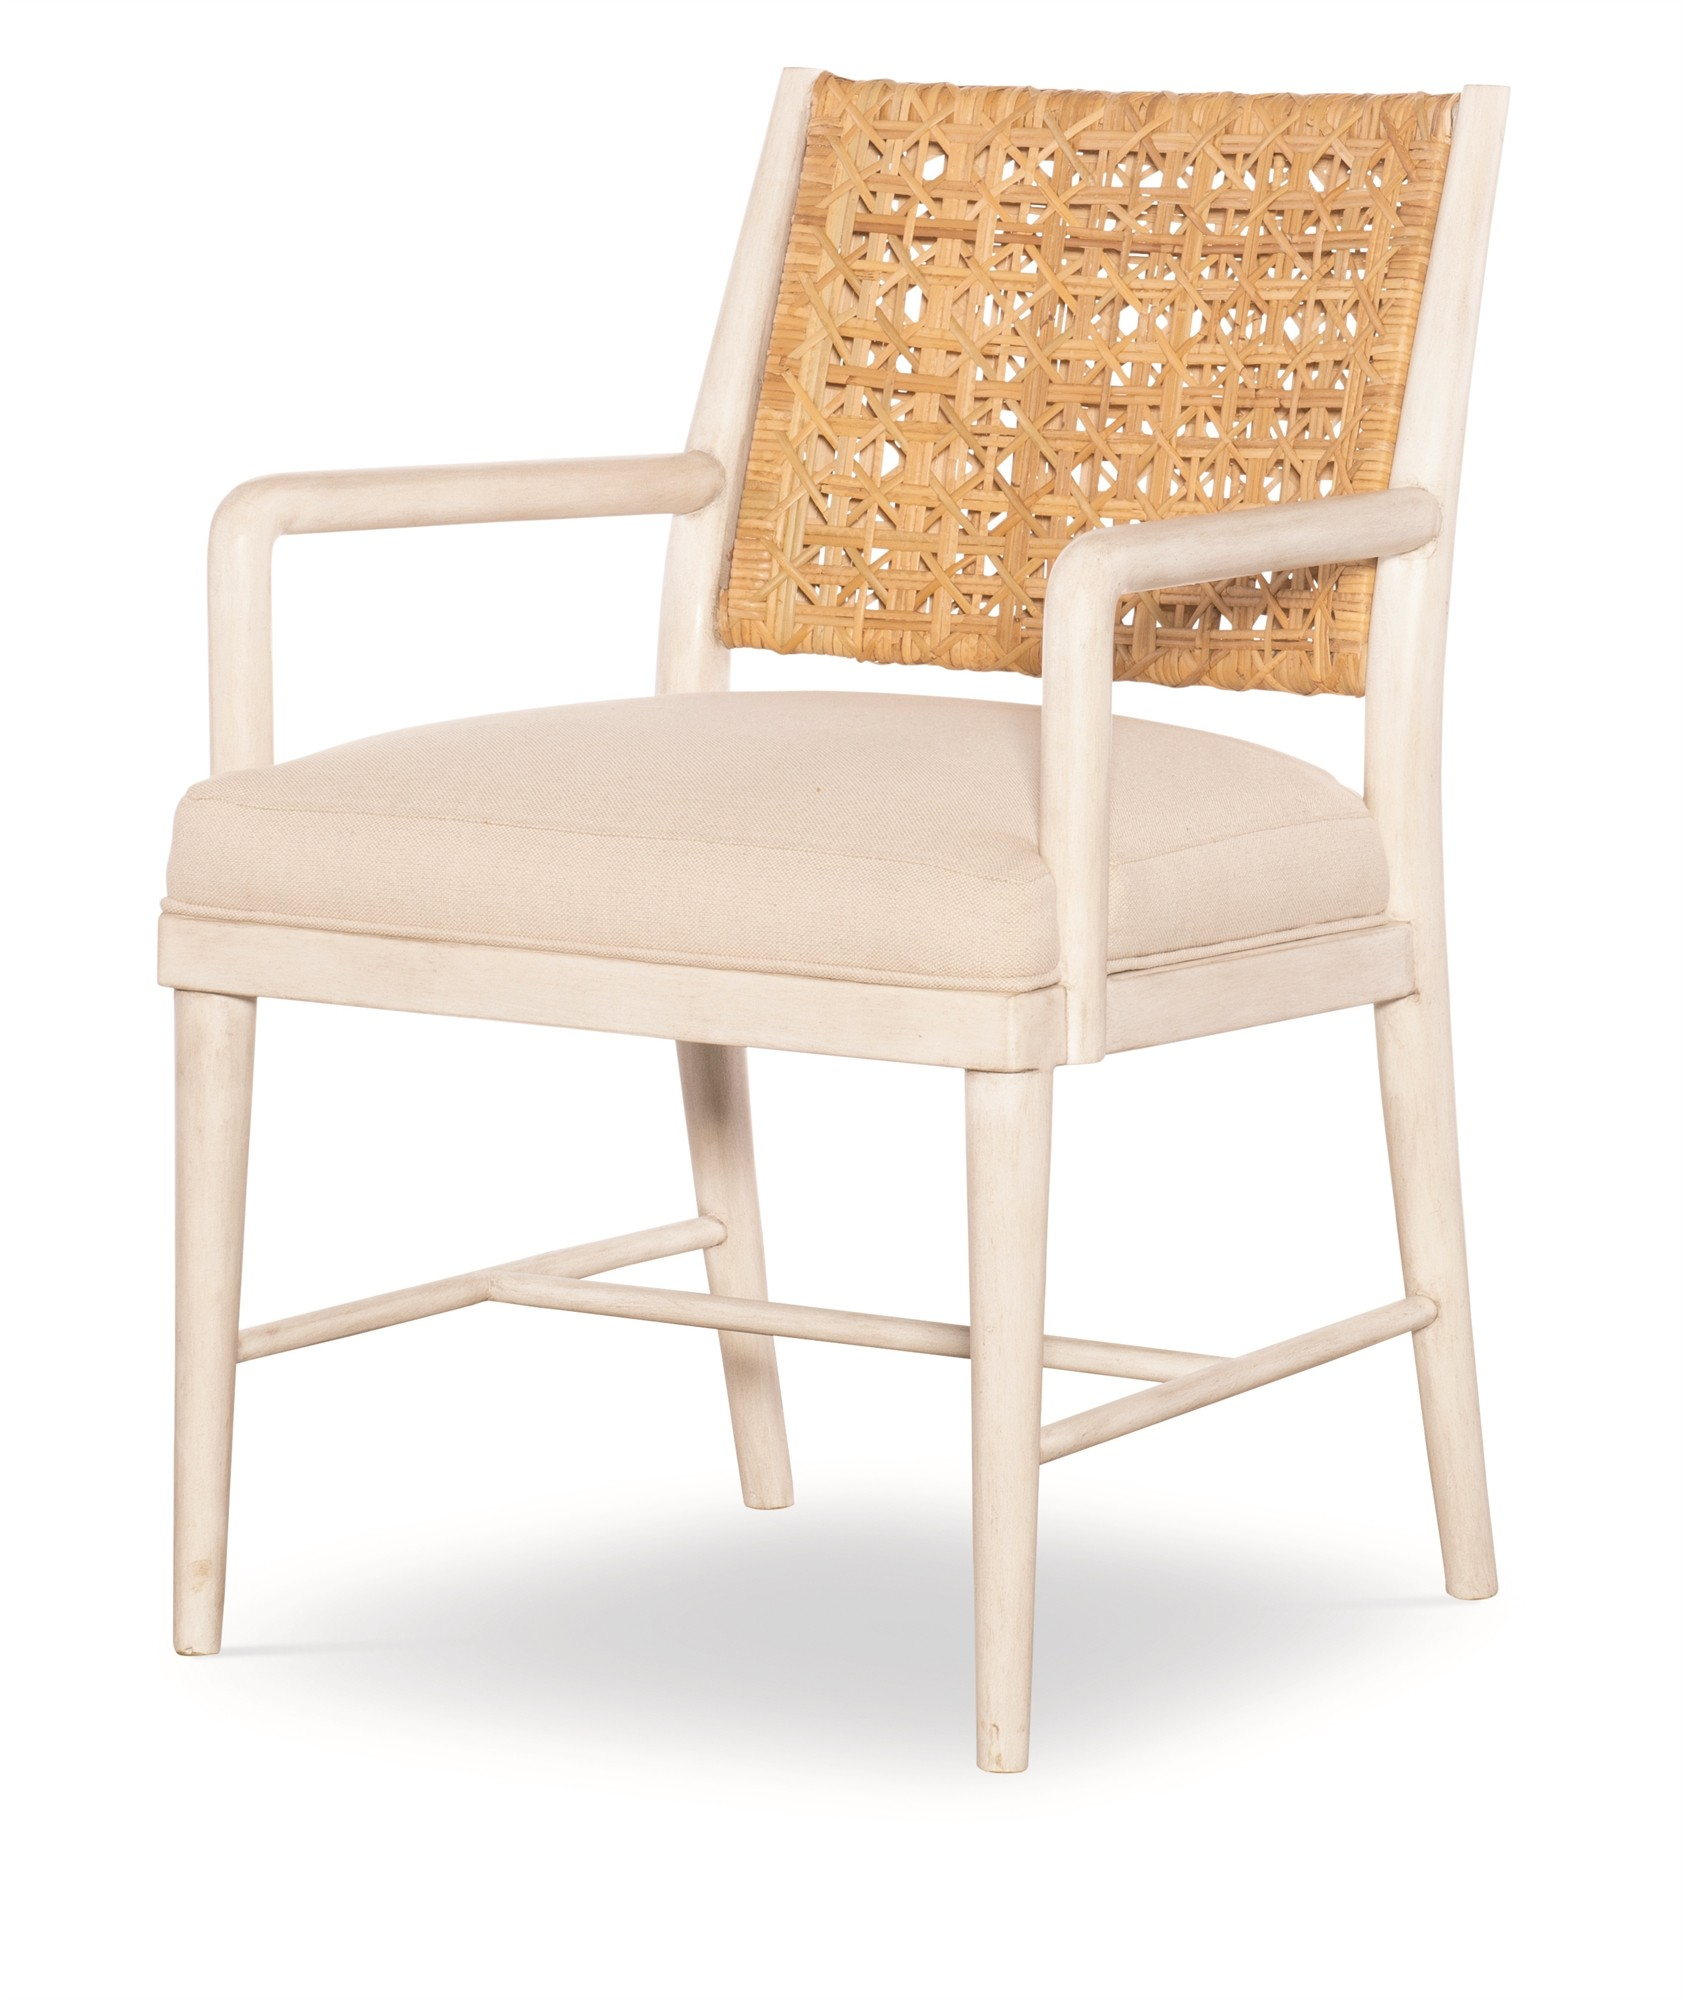 Naples Arm Chair - Natural/Flax